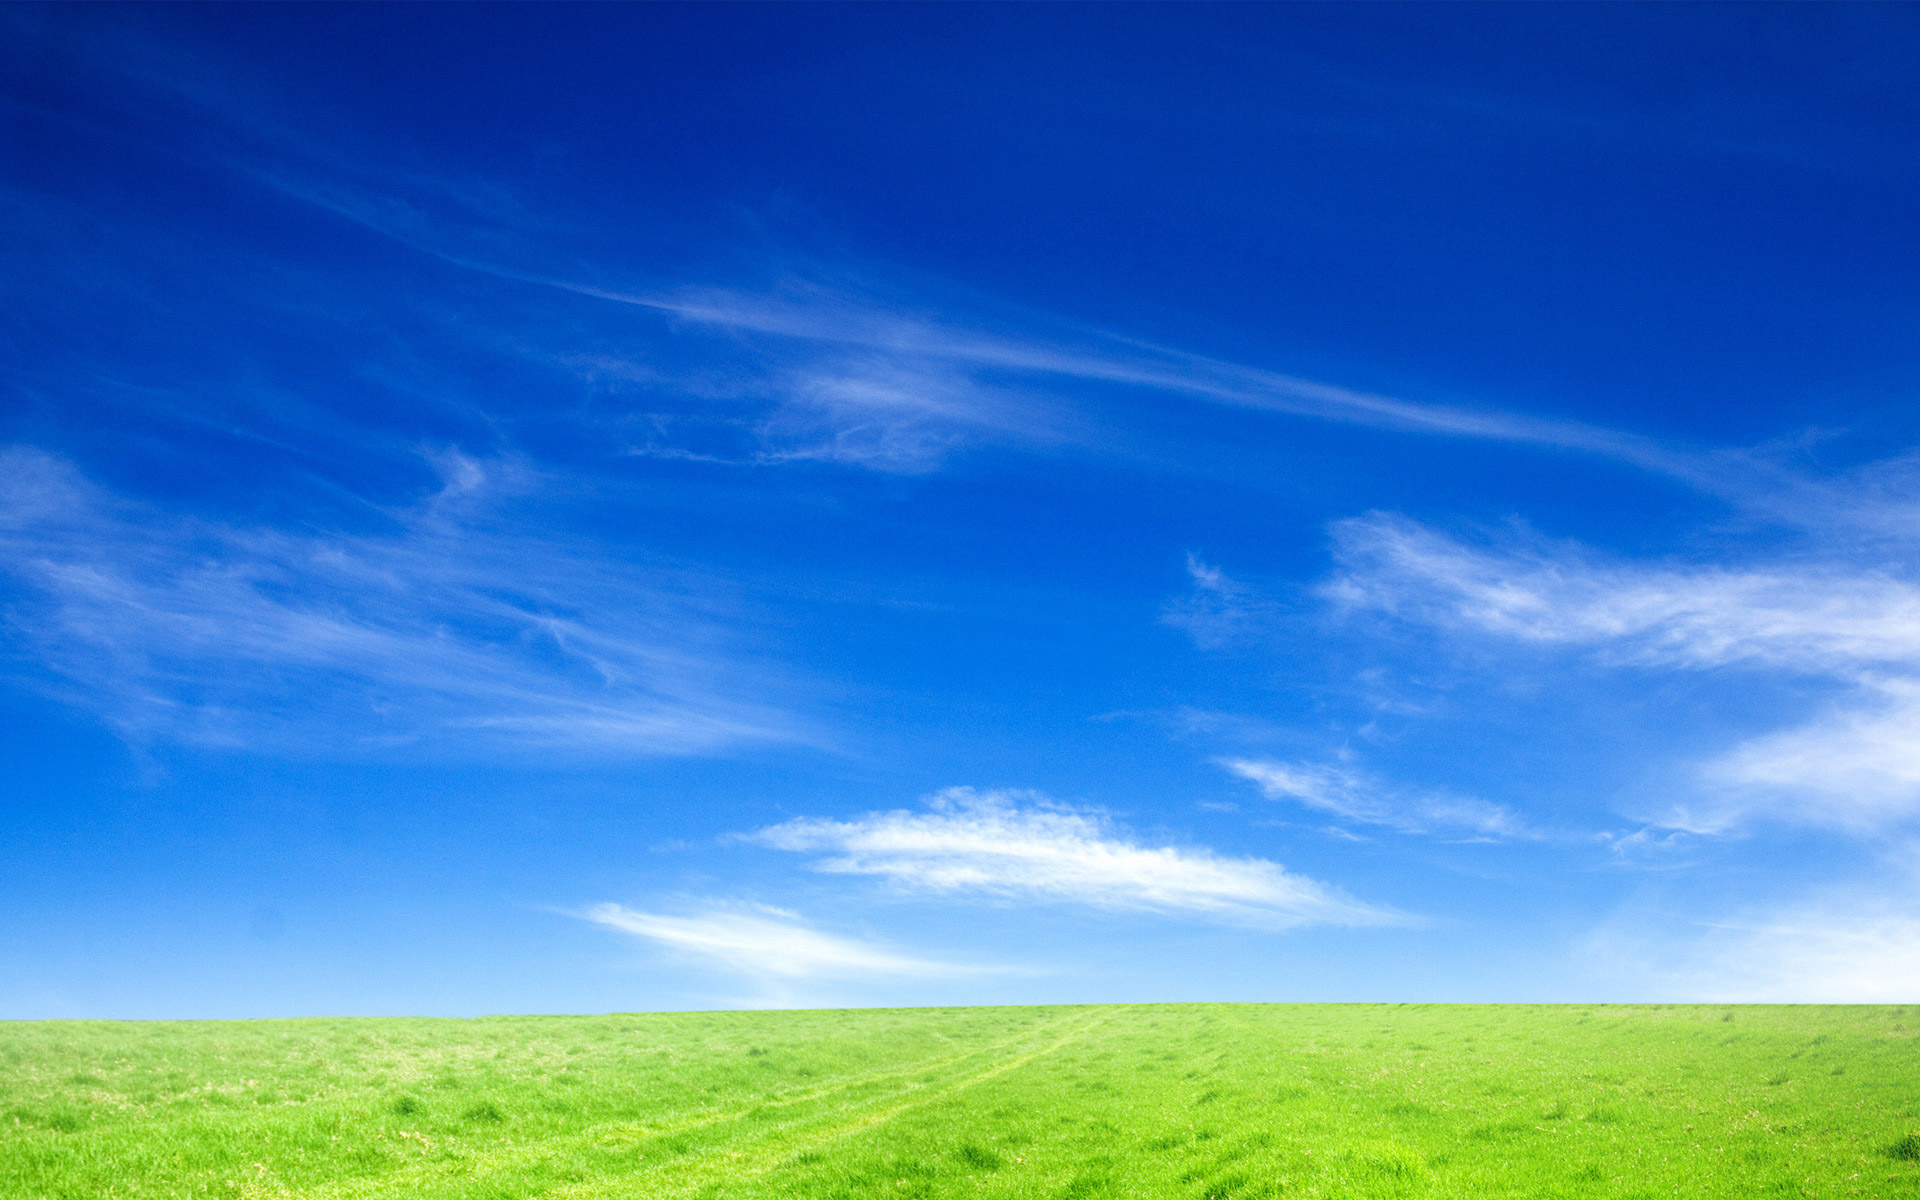 Agreen And Blue Cute Wallpaper Blue Sky And Green Grass Wallpapers Hd Wallpapers Id